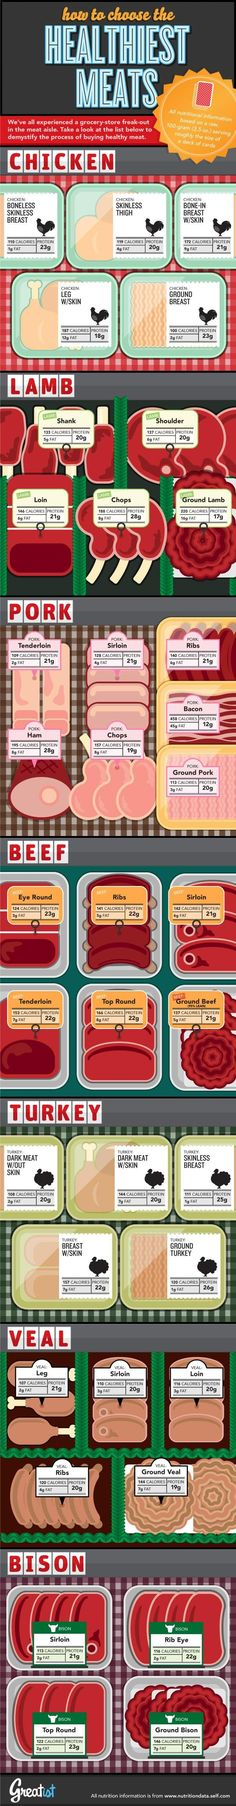 meat guide for the supermarket